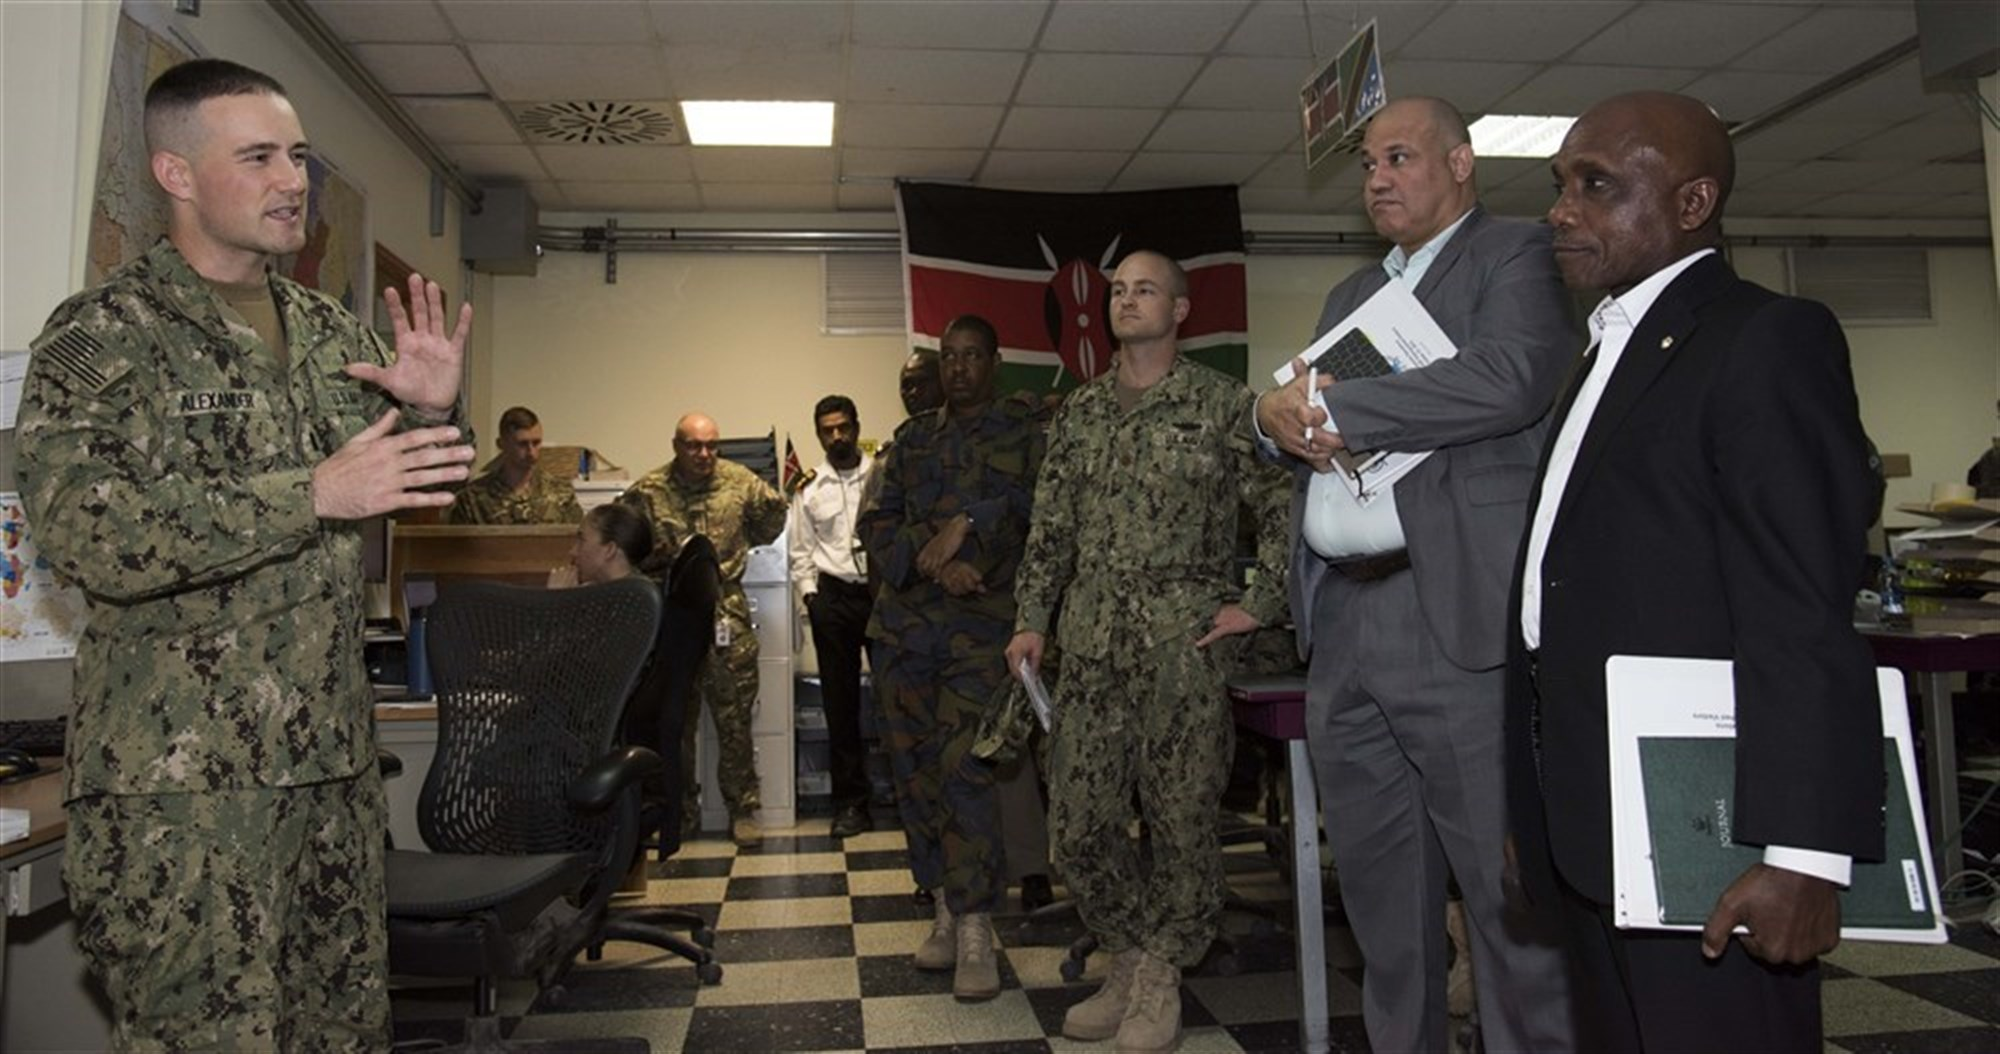 Ambassador Issimail Chanfi, director of the Eastern Africa Standby Force, right, receives an introduction to the Fusion Action Cell at Camp Lemonnier, Djibouti, Oct. 27, 2015. The FAC is comprised of service members from the U.S., Europe and East Africa working together to setup military-to-military projects and civilian support initiatives in partner countries throughout the Horn of Africa. (Combined Joint Task Force-Horn of Africa photo/Released)